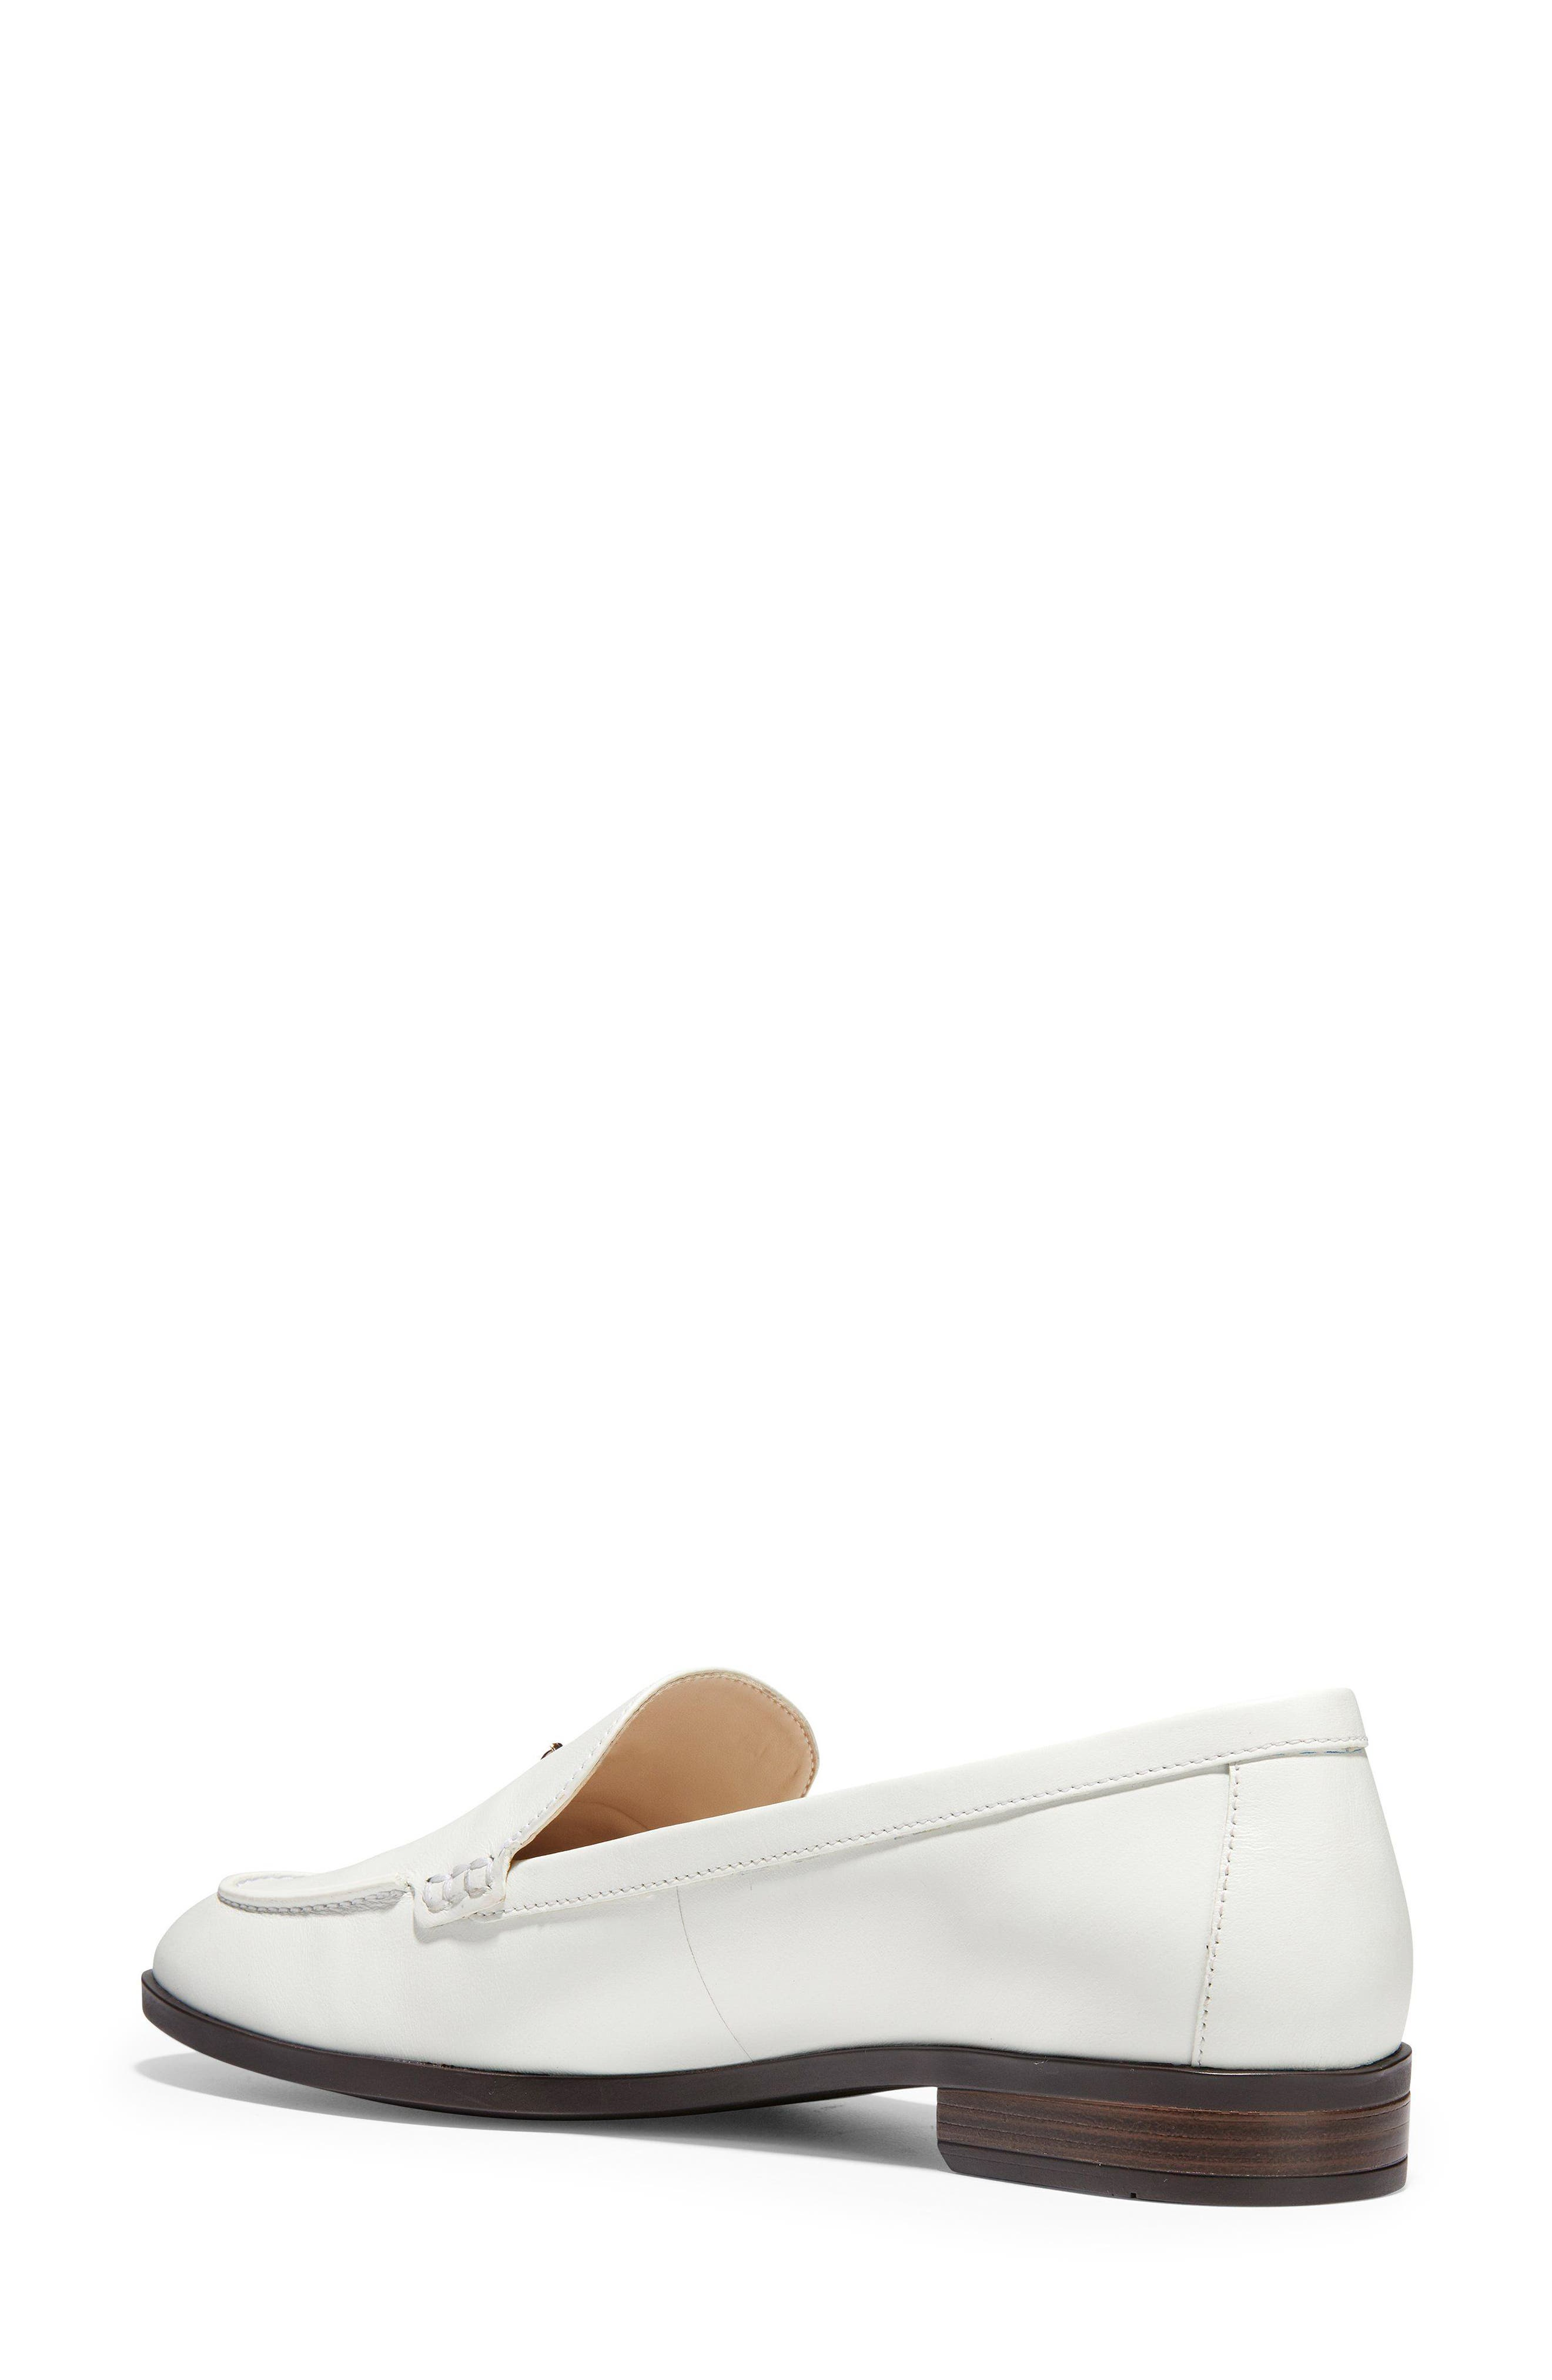 Pinch Lobster Loafer,                             Alternate thumbnail 7, color,